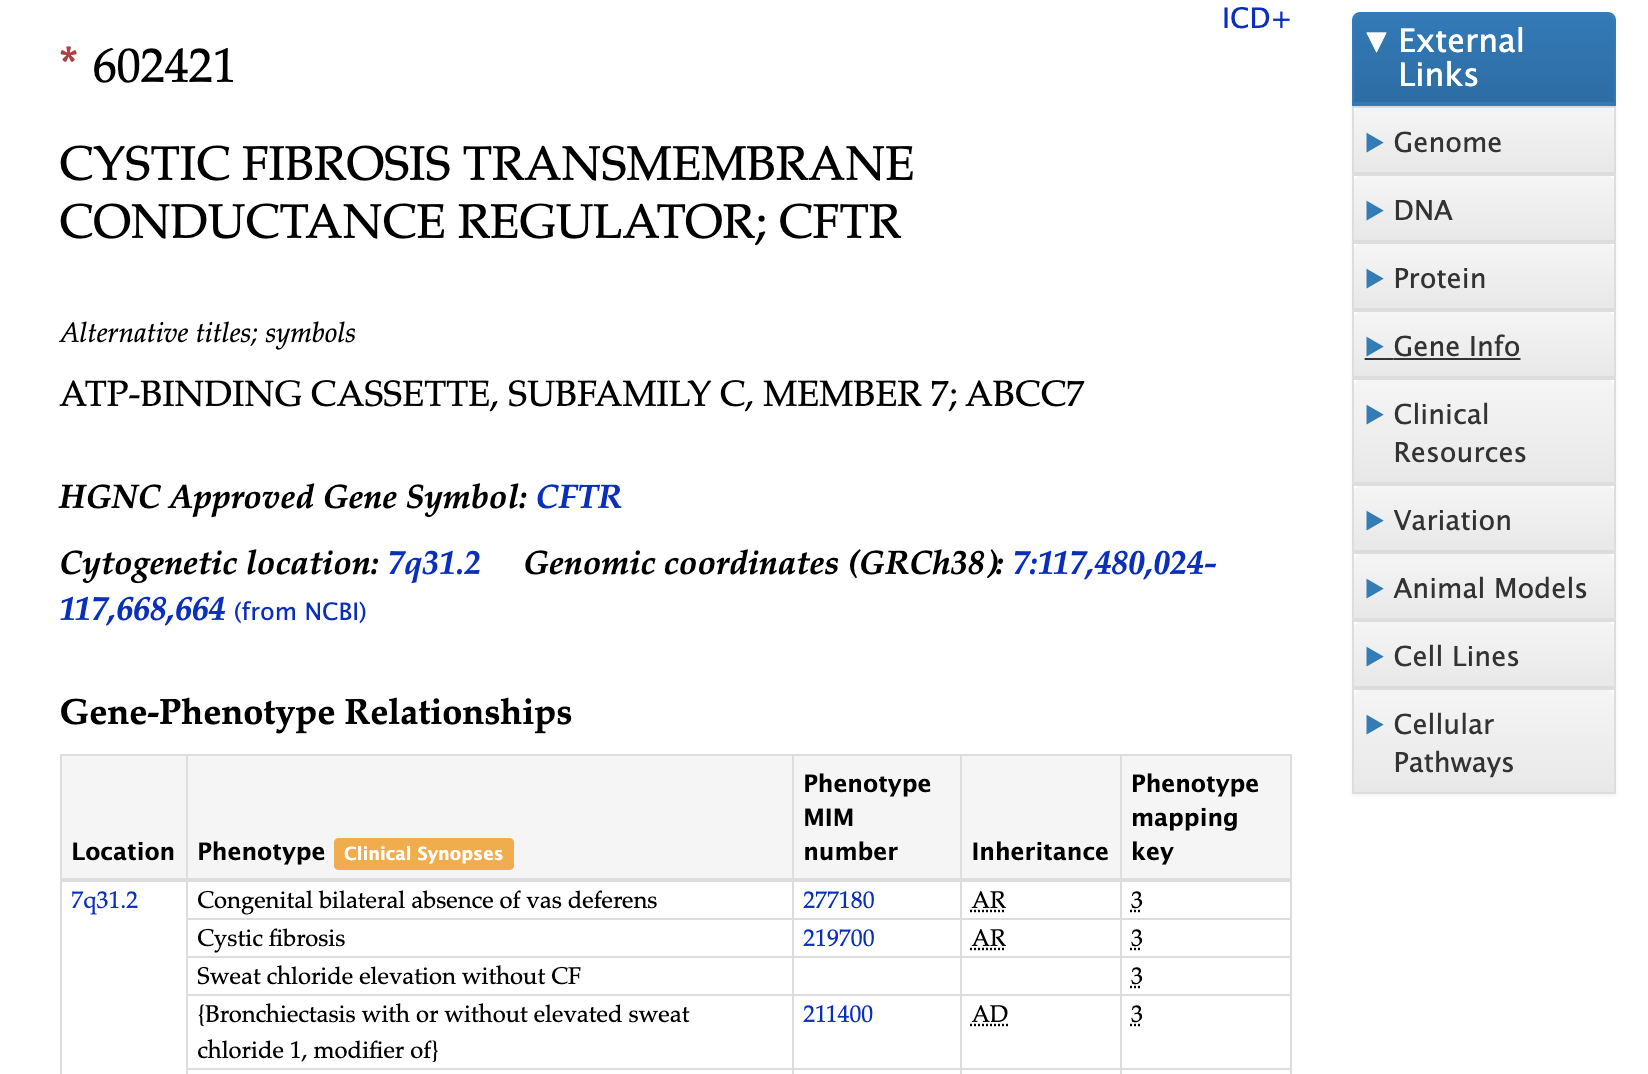 Screenshot of the gene page for CFTR on the OMIM website.